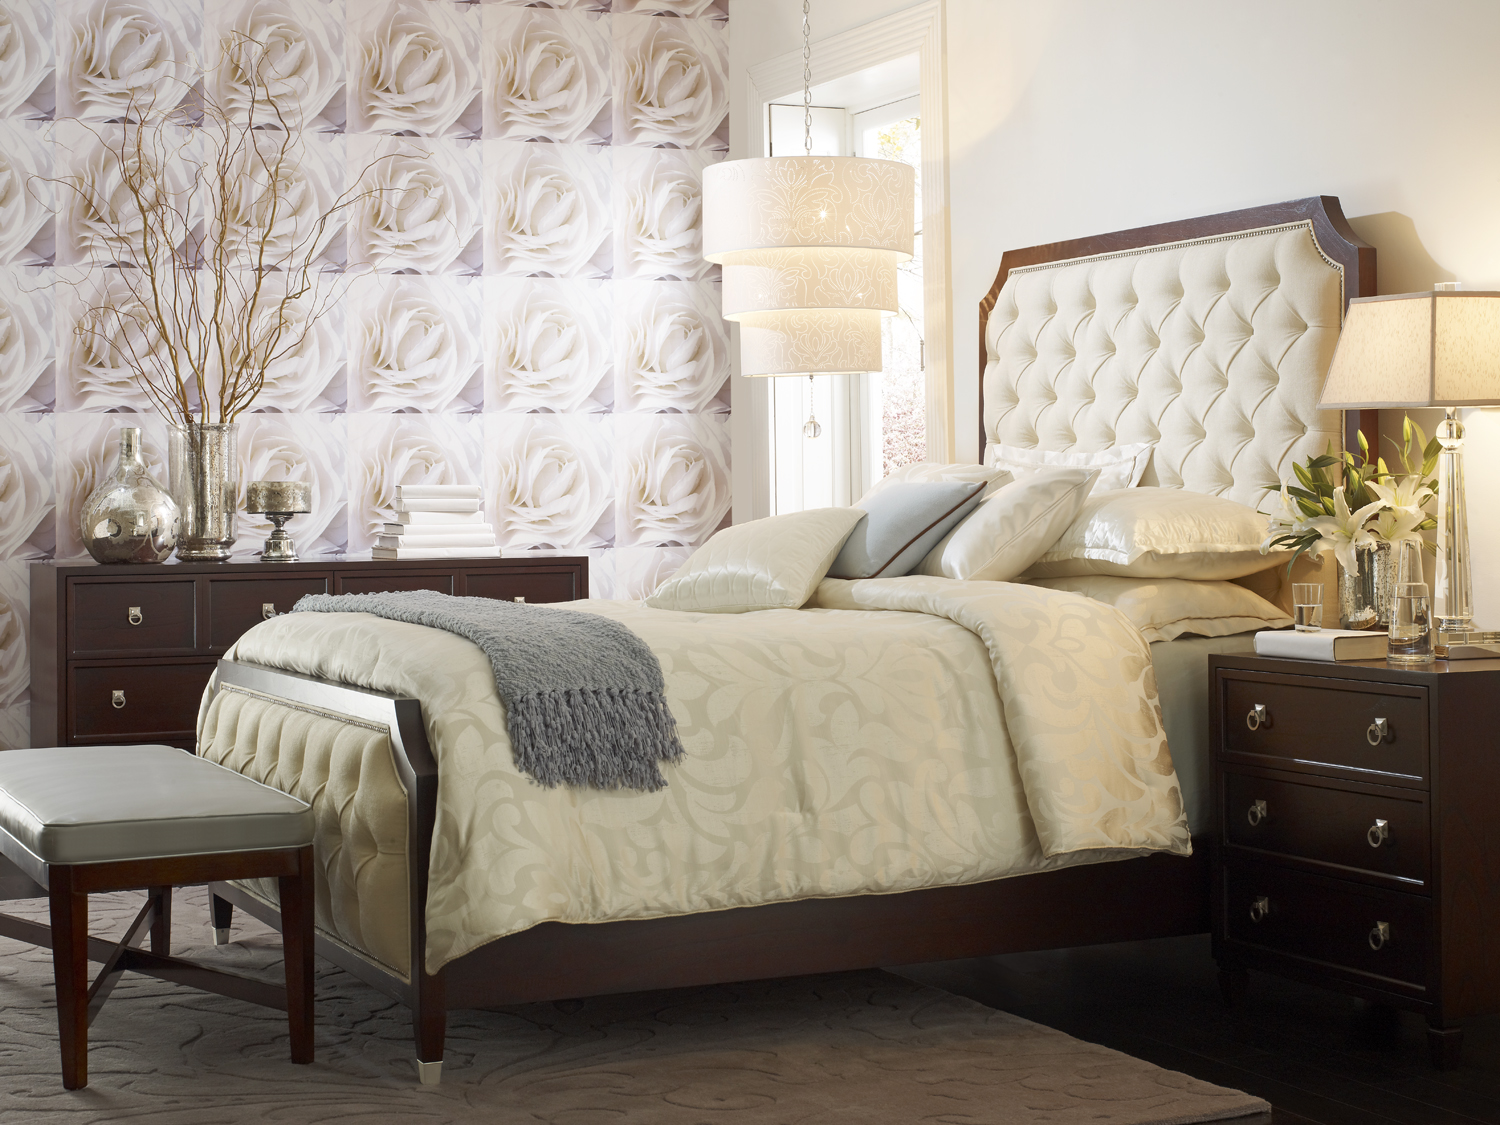 Image of: Candice Olson bedrooms hires